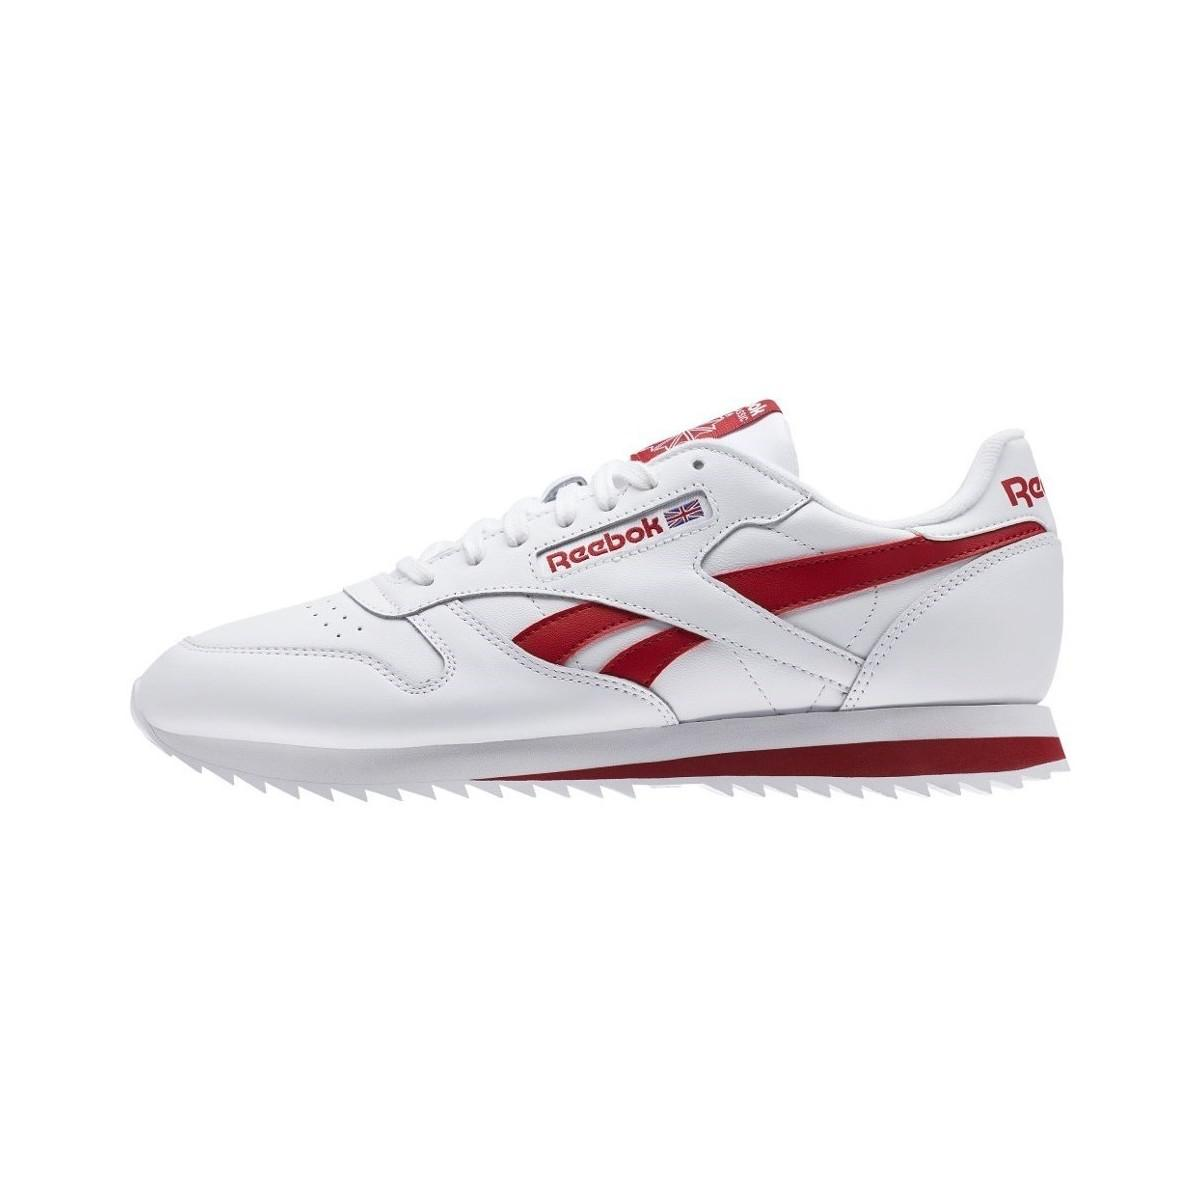 f0c58749ea8ec Reebok Classic Leather Ripple Low Bp Men s Shoes (trainers) In Red ...